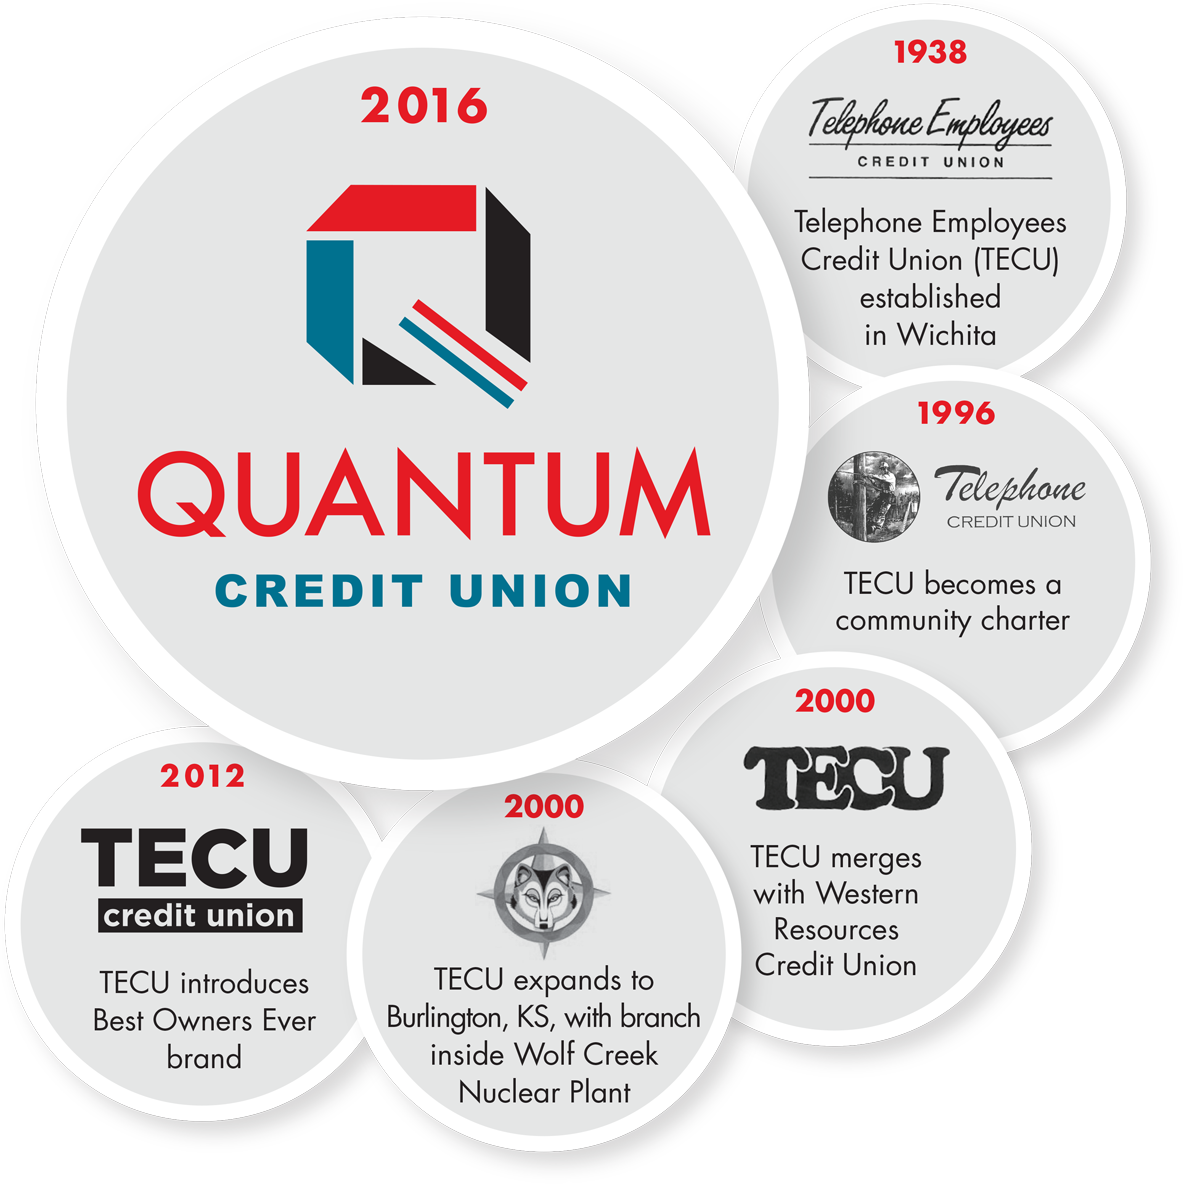 About Quantum Credit Union in Wichita Kansas